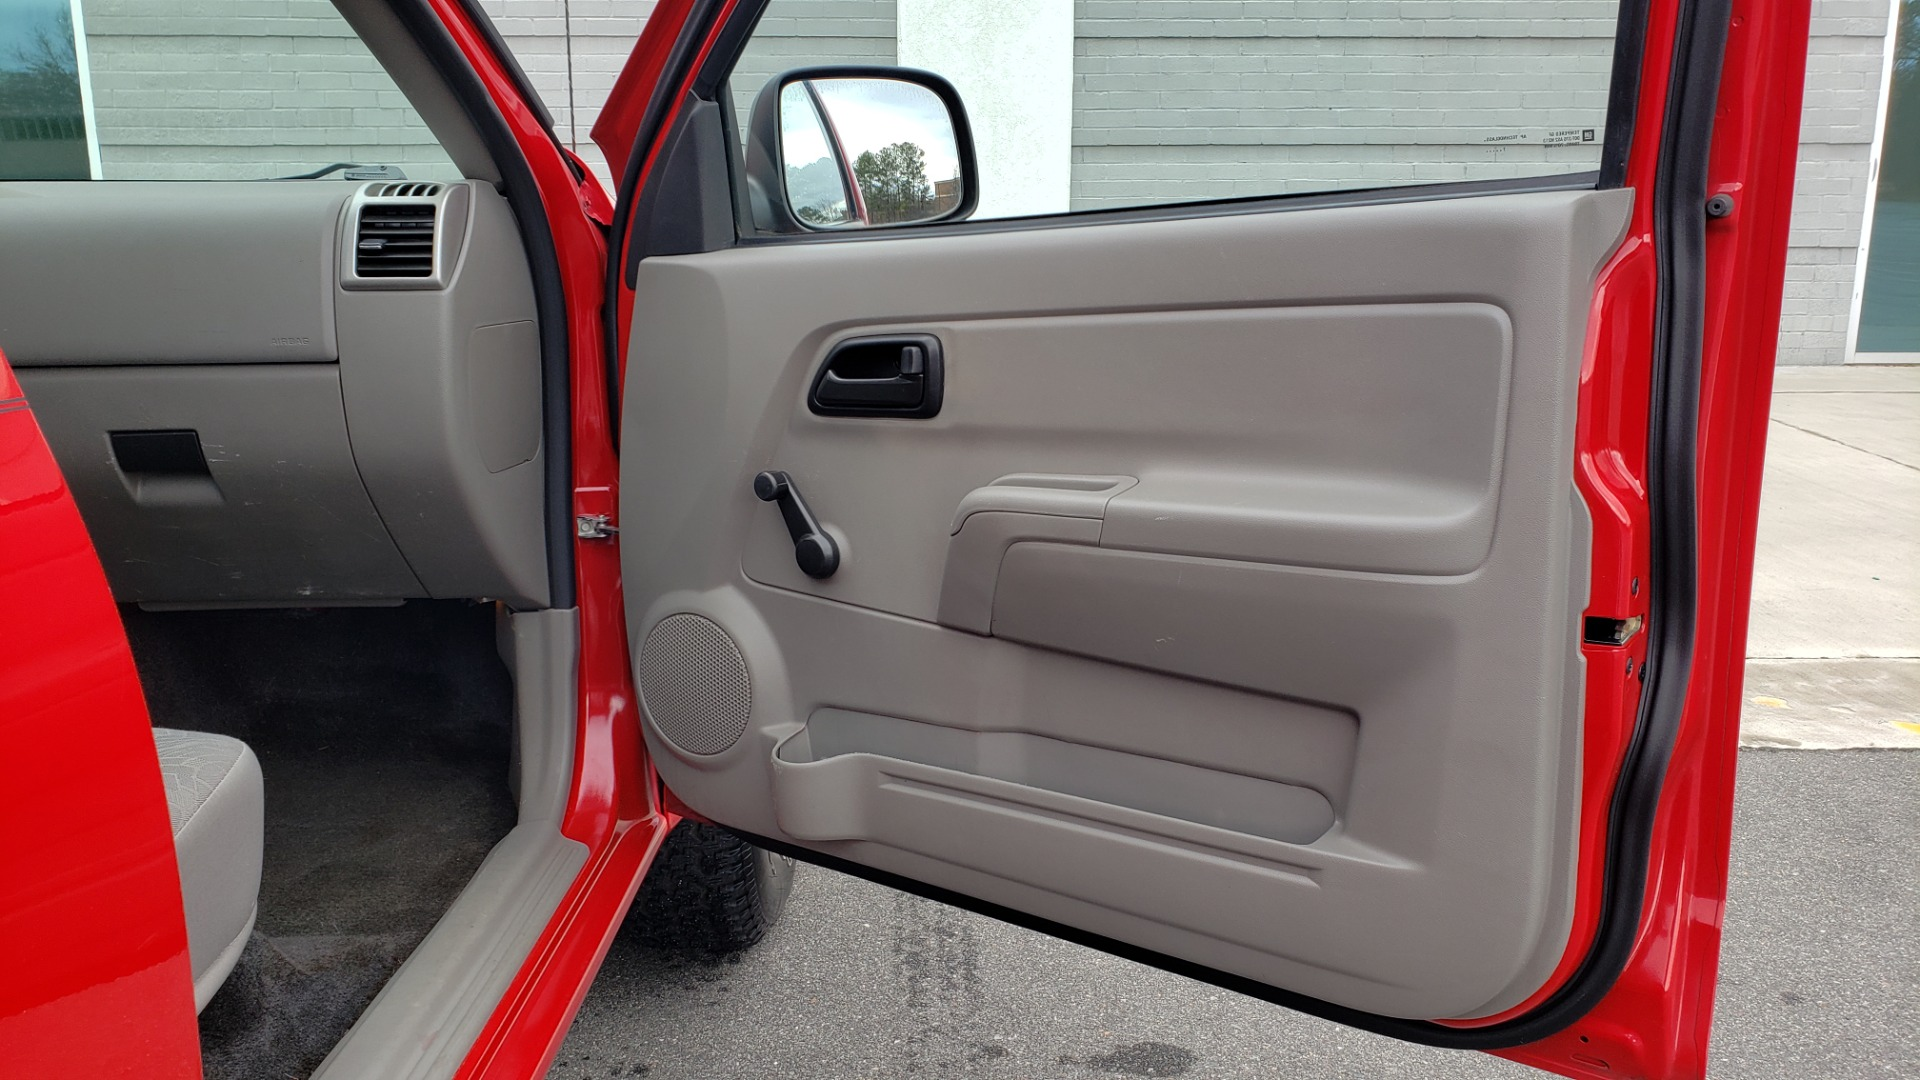 Used 2008 Chevrolet COLORADO LS 2WD / REG CAB / 2.9L 4-CYL / 4-SPD AUTO / NEW CARPET for sale Sold at Formula Imports in Charlotte NC 28227 39